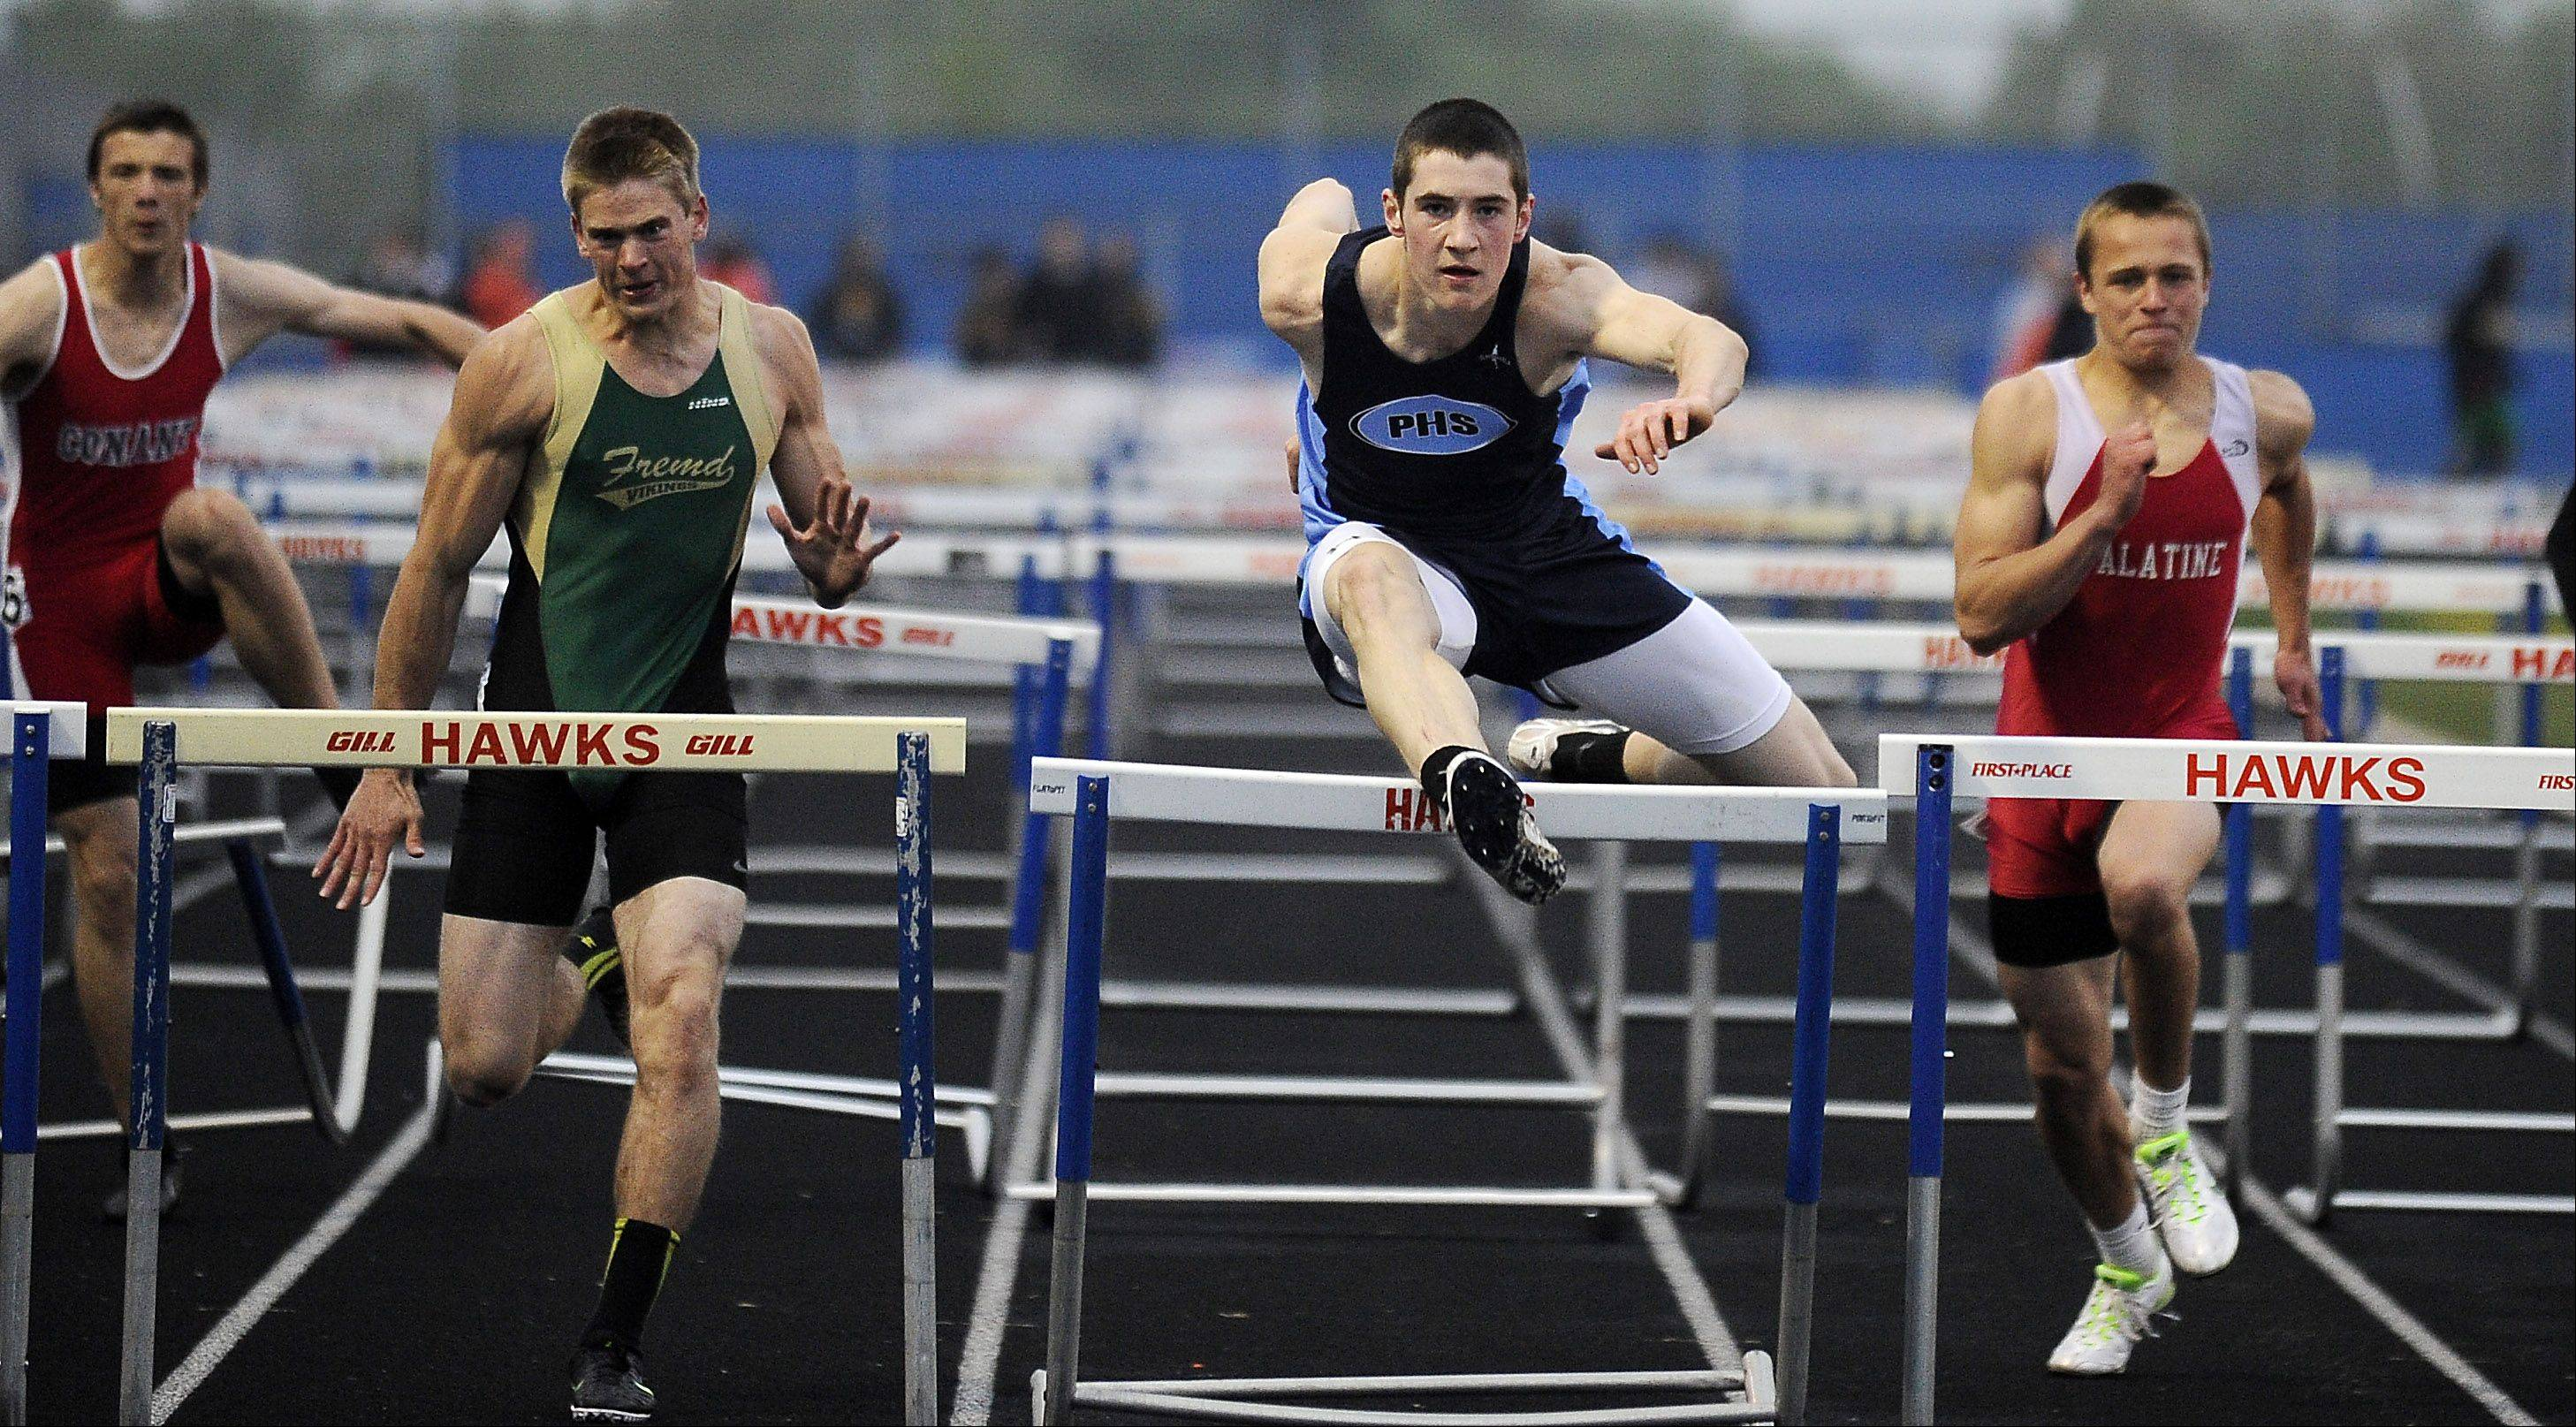 Dave Kendziera of Prospect wins the 110-meter hurdles in the Mid-Suburban League meet at Hoffman Estates on Friday.